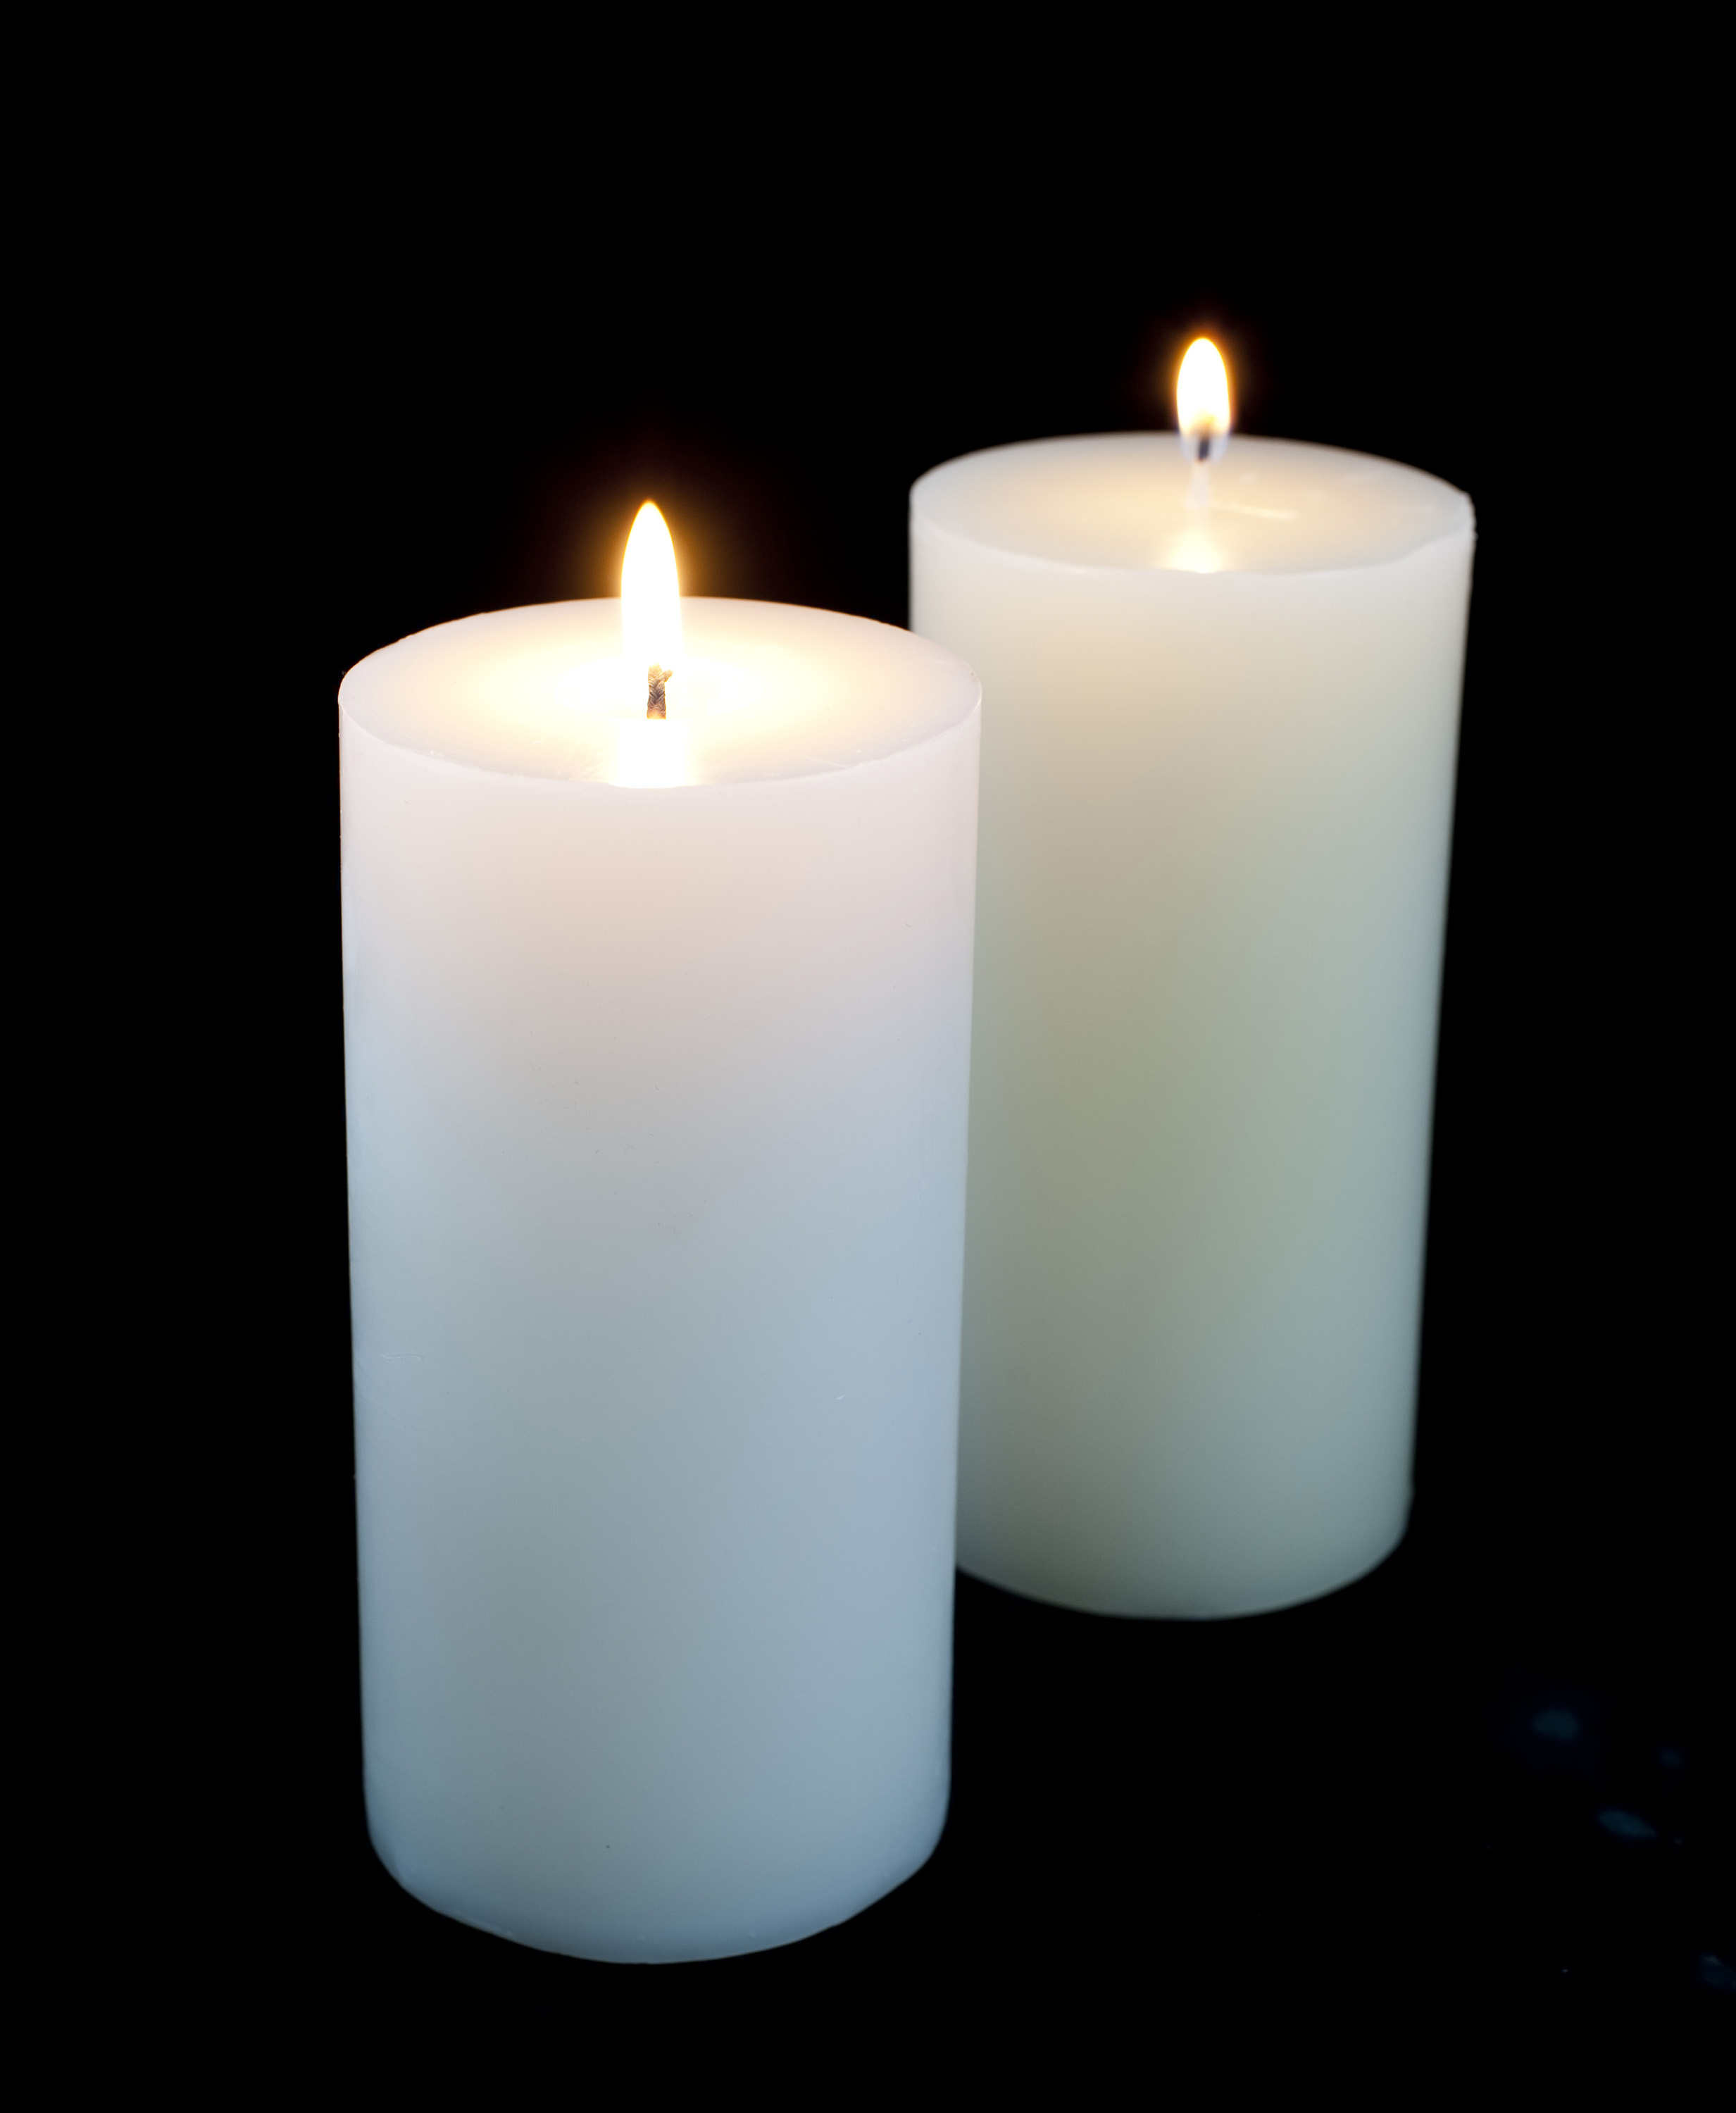 large white candles burning against a dark backdrop